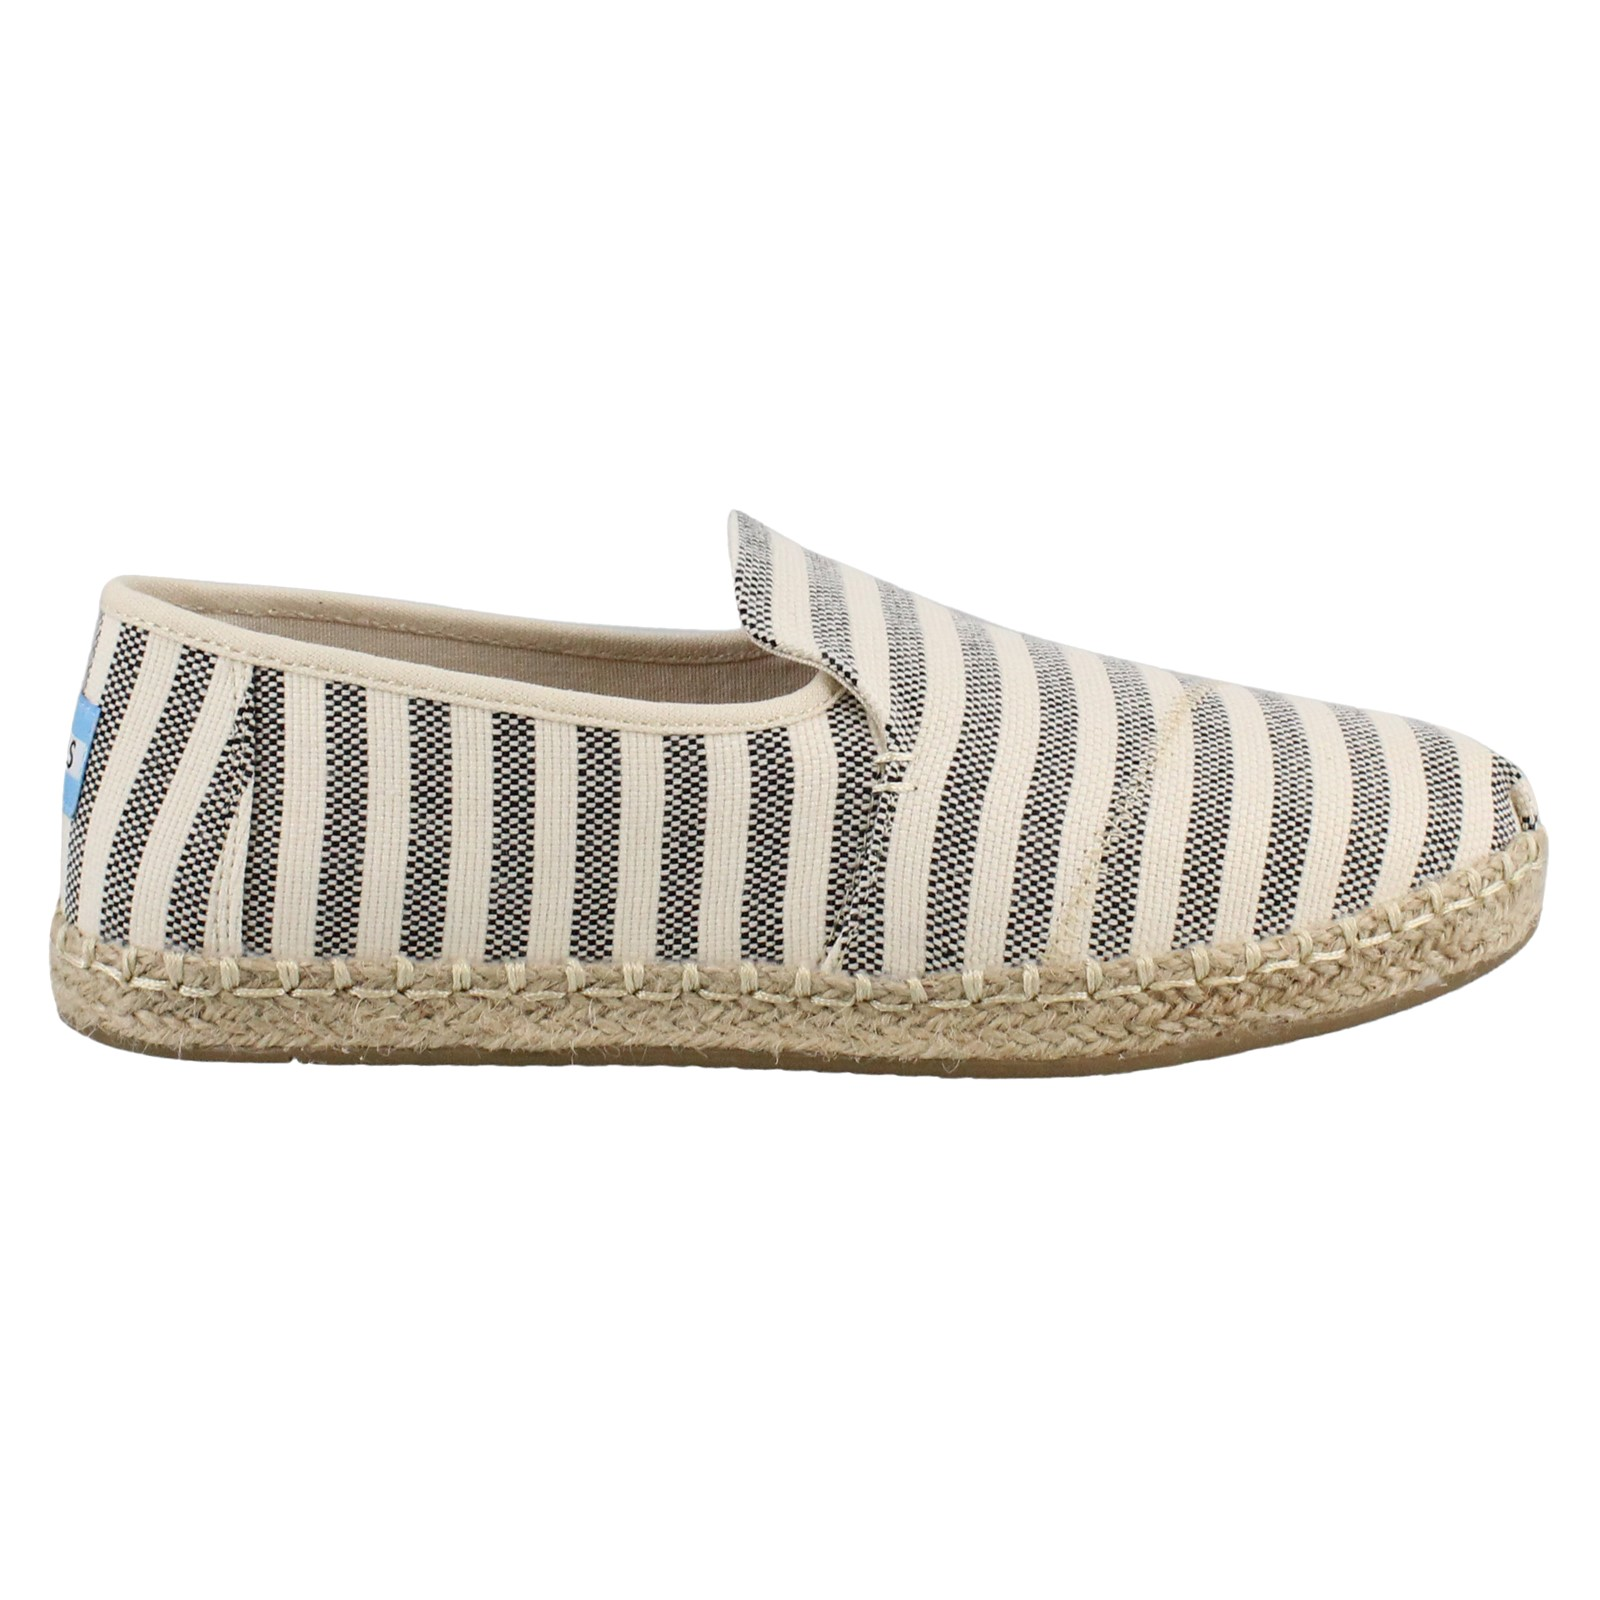 Women's Toms, Deconstructed Alpargatas Slip on Shoes